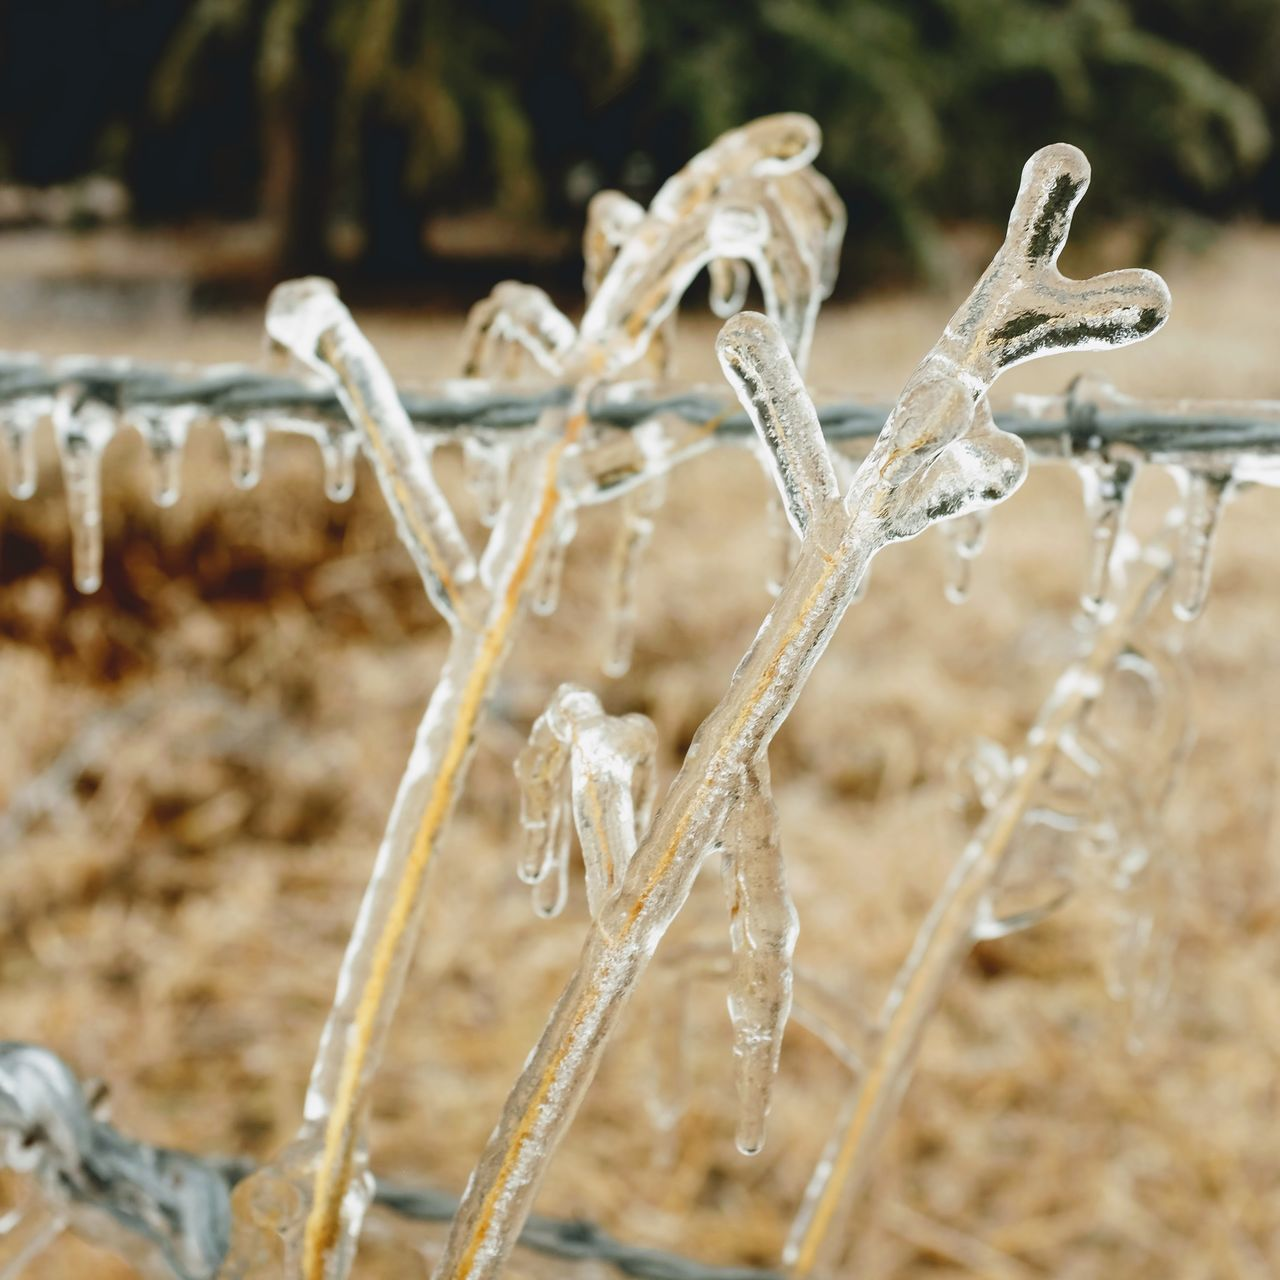 """Visual Journal January 16, 2017 Western, Nebraska - 15 and 16 January 2017 Ice Storm - Over the course of 15 and 16 January 2017, an upper-level storm system tracked from northwest Mexico into the central Plains. A seasonably moist low-level air mass present ahead of the upper-air disturbance surged north through the Great Plains, atop a sub-freezing, near-surface layer of air. The net result was a widespread ice storm which affected locations from the southern High Plains into the mid Missouri River Valley. This winter storm was unusual from the perspective that the predominant precipitation type was freezing rain with little in the way of observed snowfall. Over eastern Nebraska and southwest Iowa, ice accumulations ranged from 0.50-0.75"""" across southeast Nebraska to 0.10-0.20"""" in the Omaha Metro area. Camera Work Close-up Cold Temperature Day Extreme Weather EyeEm Best Shots EyeEm Masterclass Frozen Ice Storm Ice Storm 2017 Icicles Icy Day MidWest My Neighborhood No People Outdoors Photo Diary Photo Essay Plant Rural America Shootermag_usa Small Town Stories Storytelling Visual Journal Wintertime"""